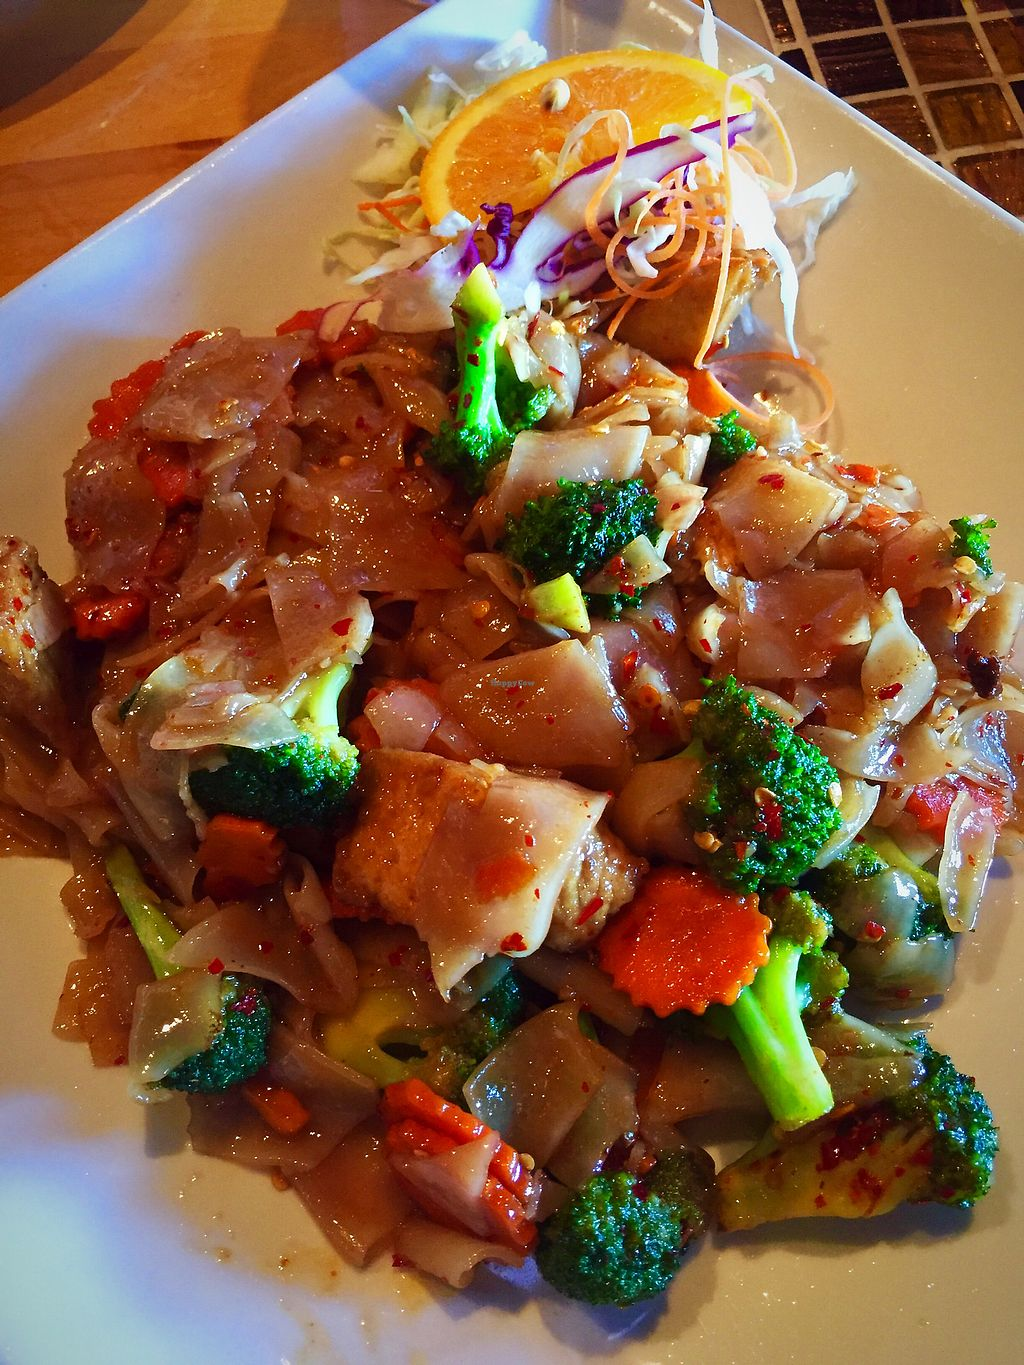 "Photo of Chon Thai Food  by <a href=""/members/profile/Squirrellypup"">Squirrellypup</a> <br/>Pad Se Ew with Tofu <br/> August 24, 2017  - <a href='/contact/abuse/image/99048/296856'>Report</a>"